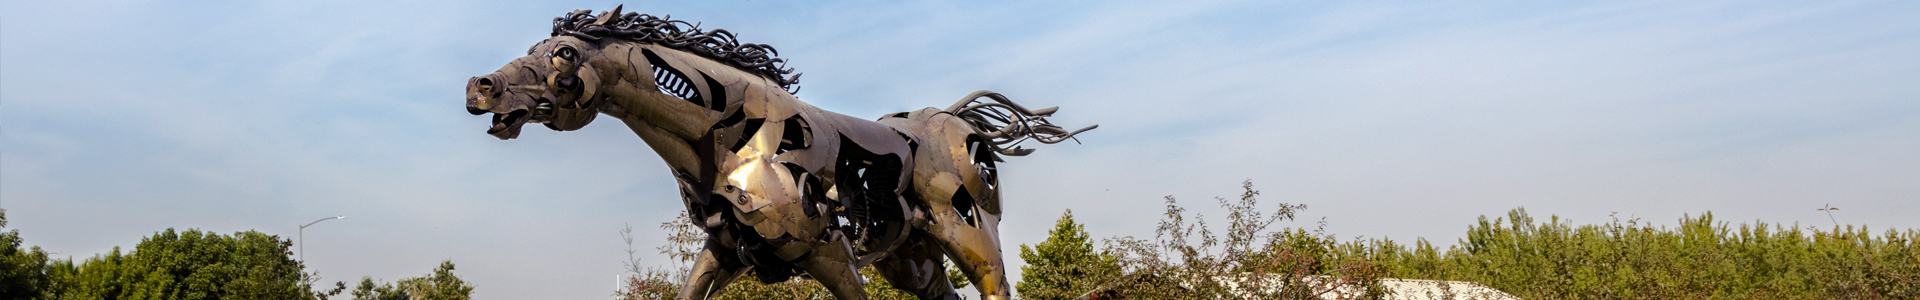 An image of the Drycreek Trailhead horse statue